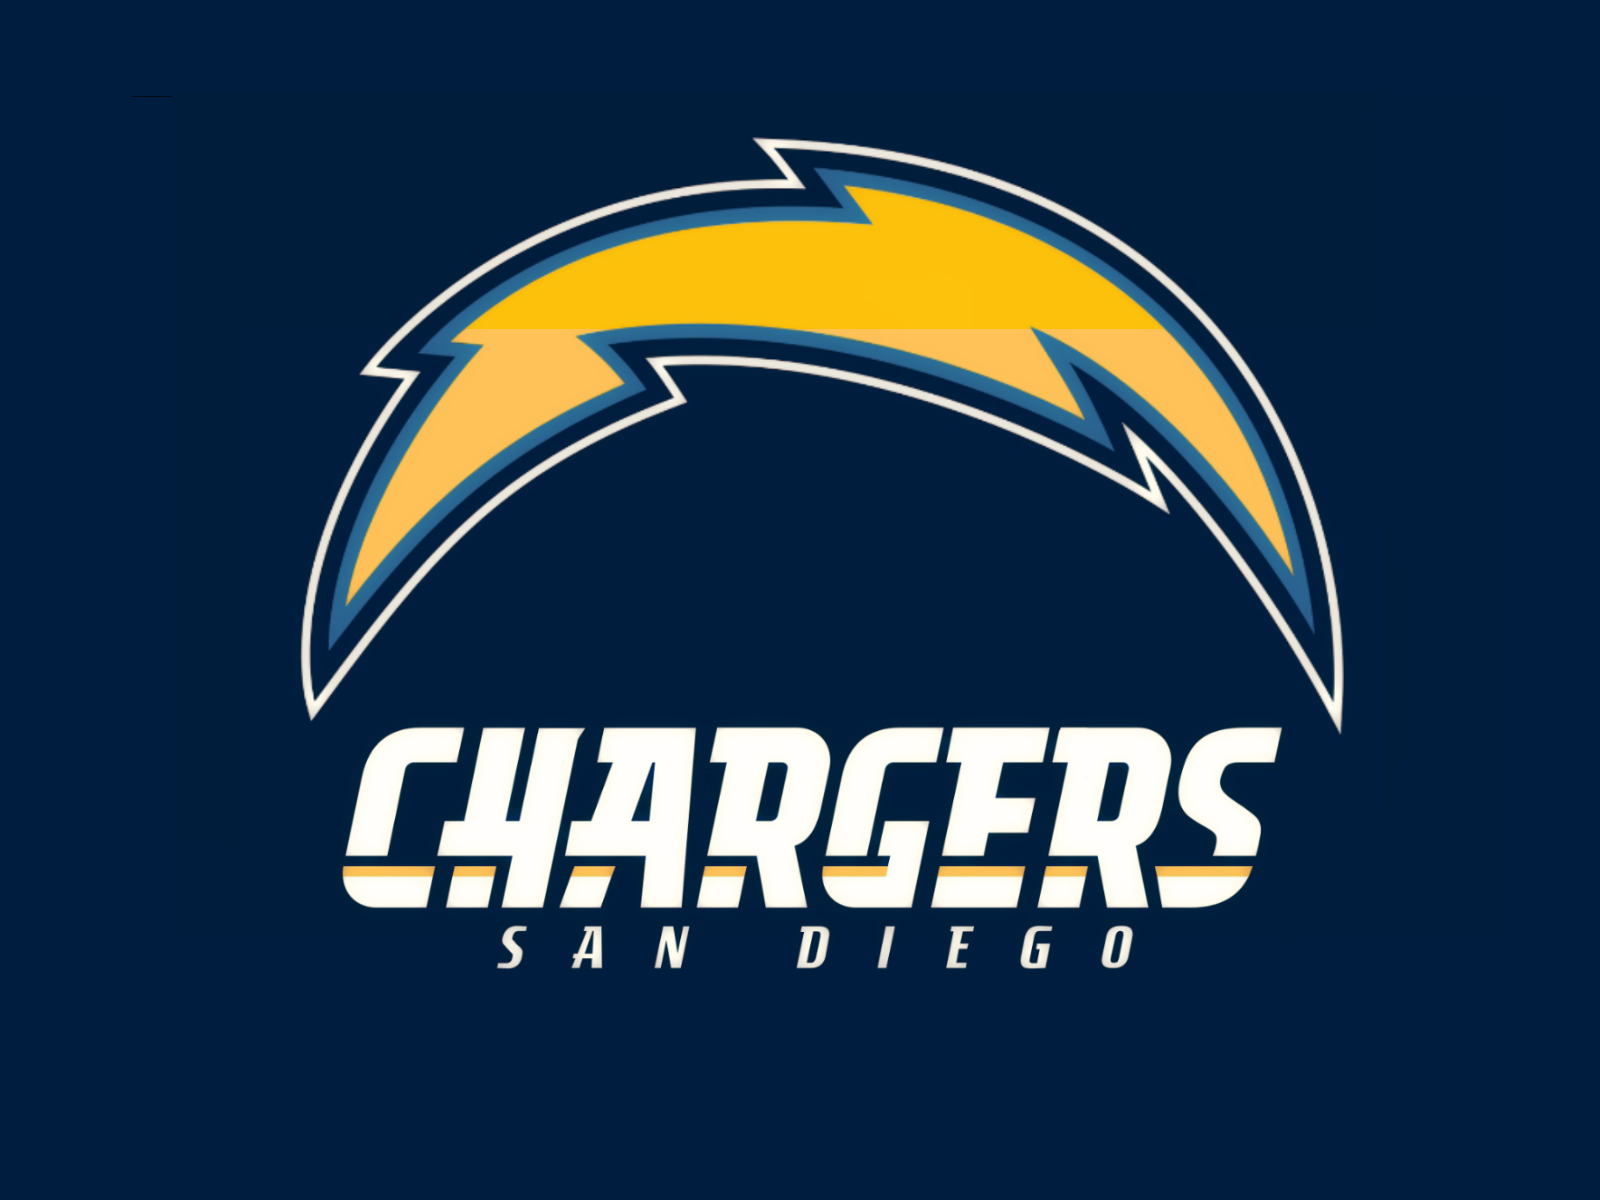 San Diego Chargers Nfl Football Hs Wallpaper 1600x1200